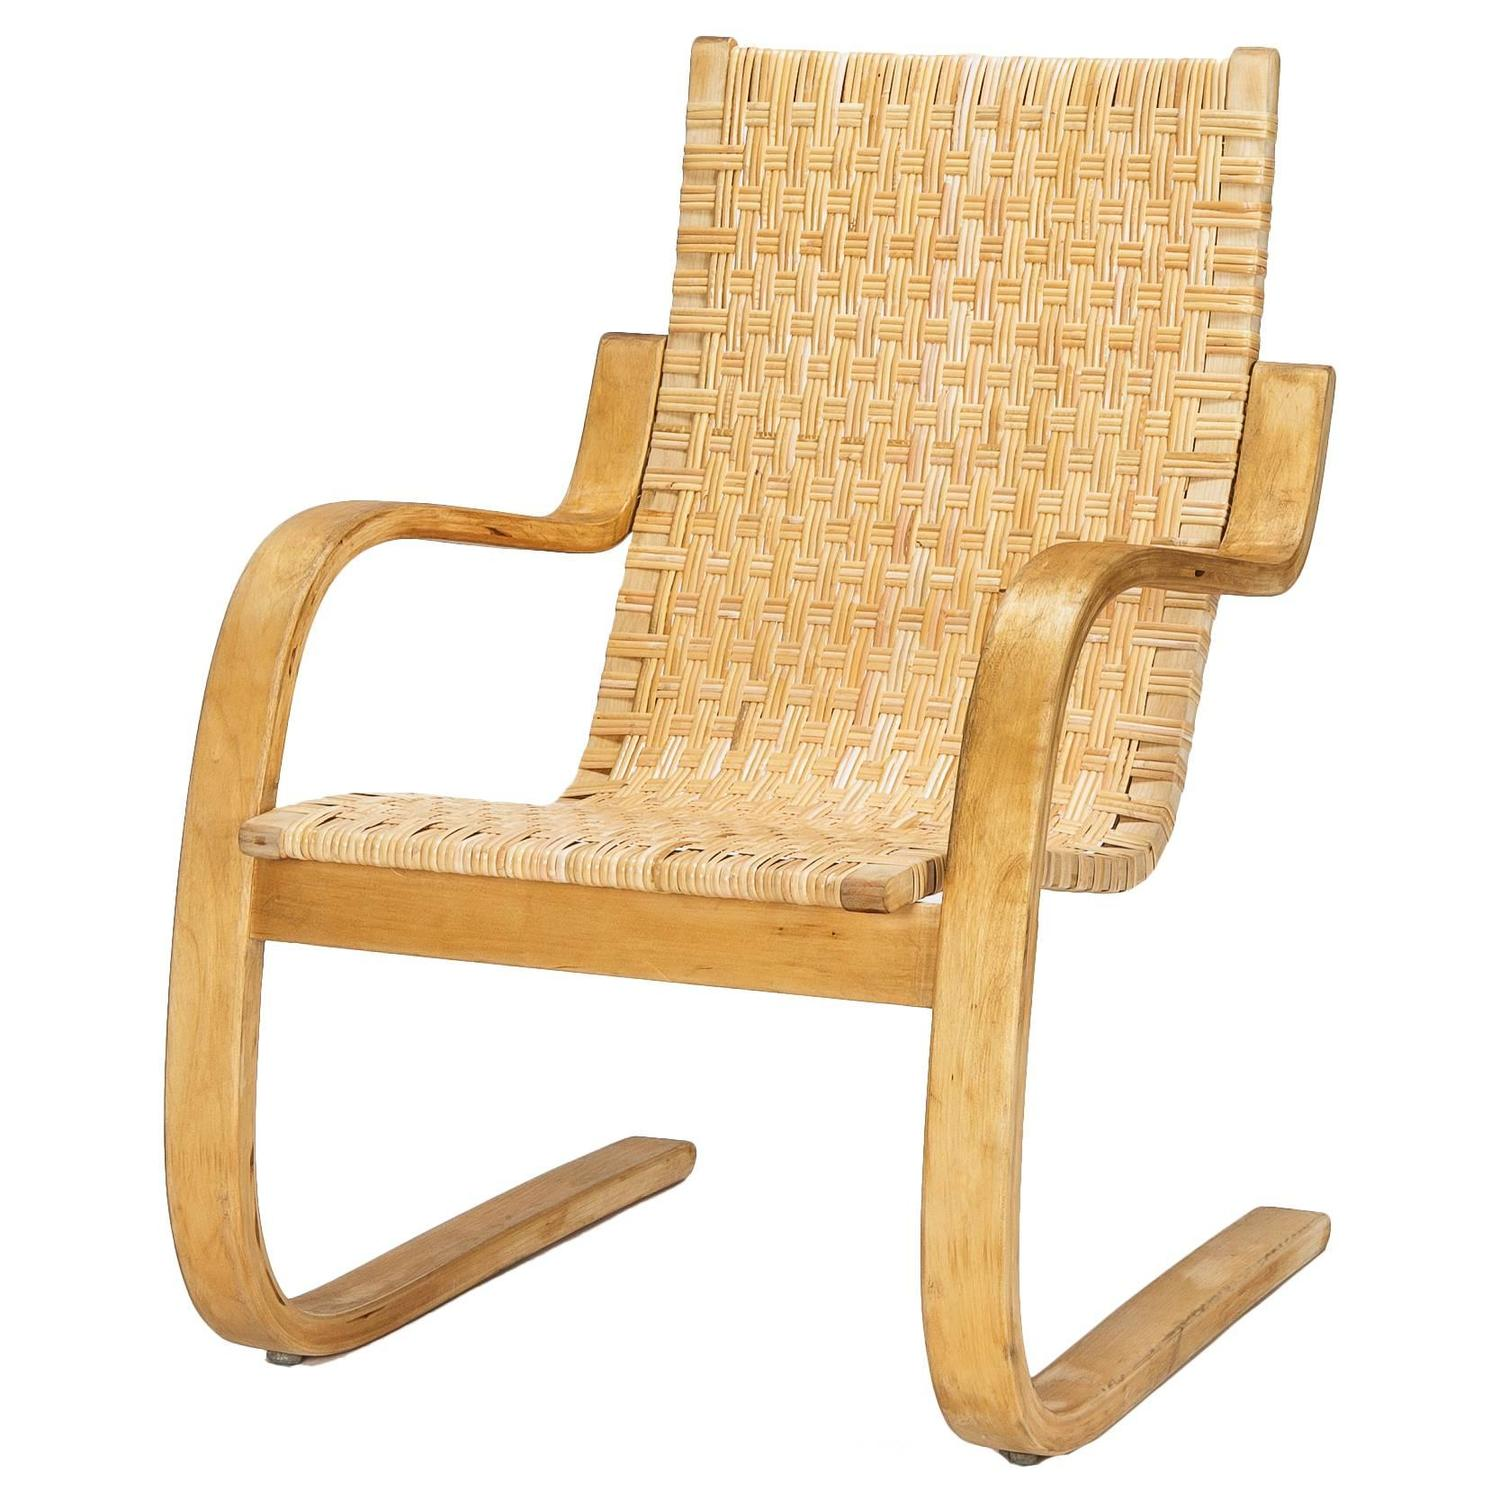 Alvar aalto cantilever chair 406 by artek in birch and for Alvar aalto chaise